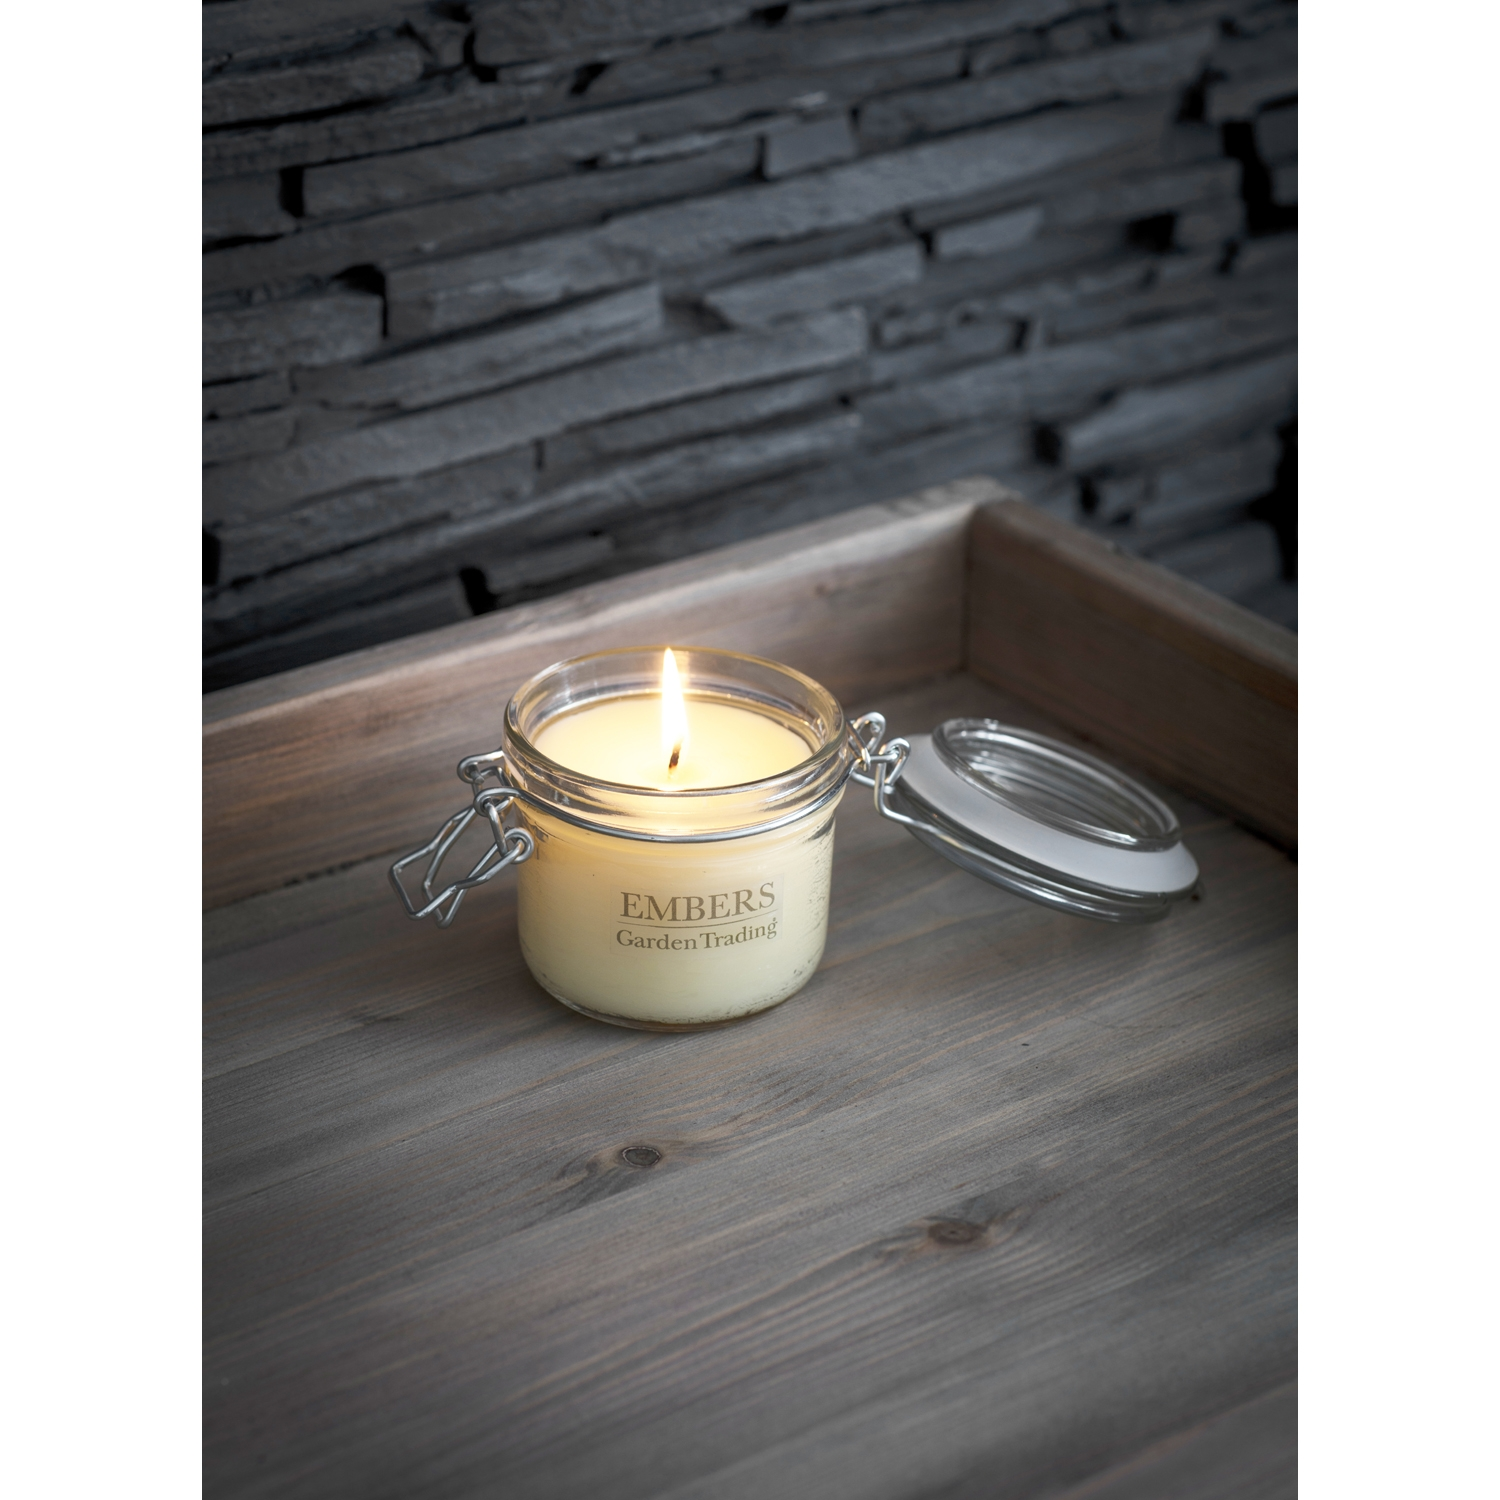 Image of Garden Trading House Candle, Embers, Glass